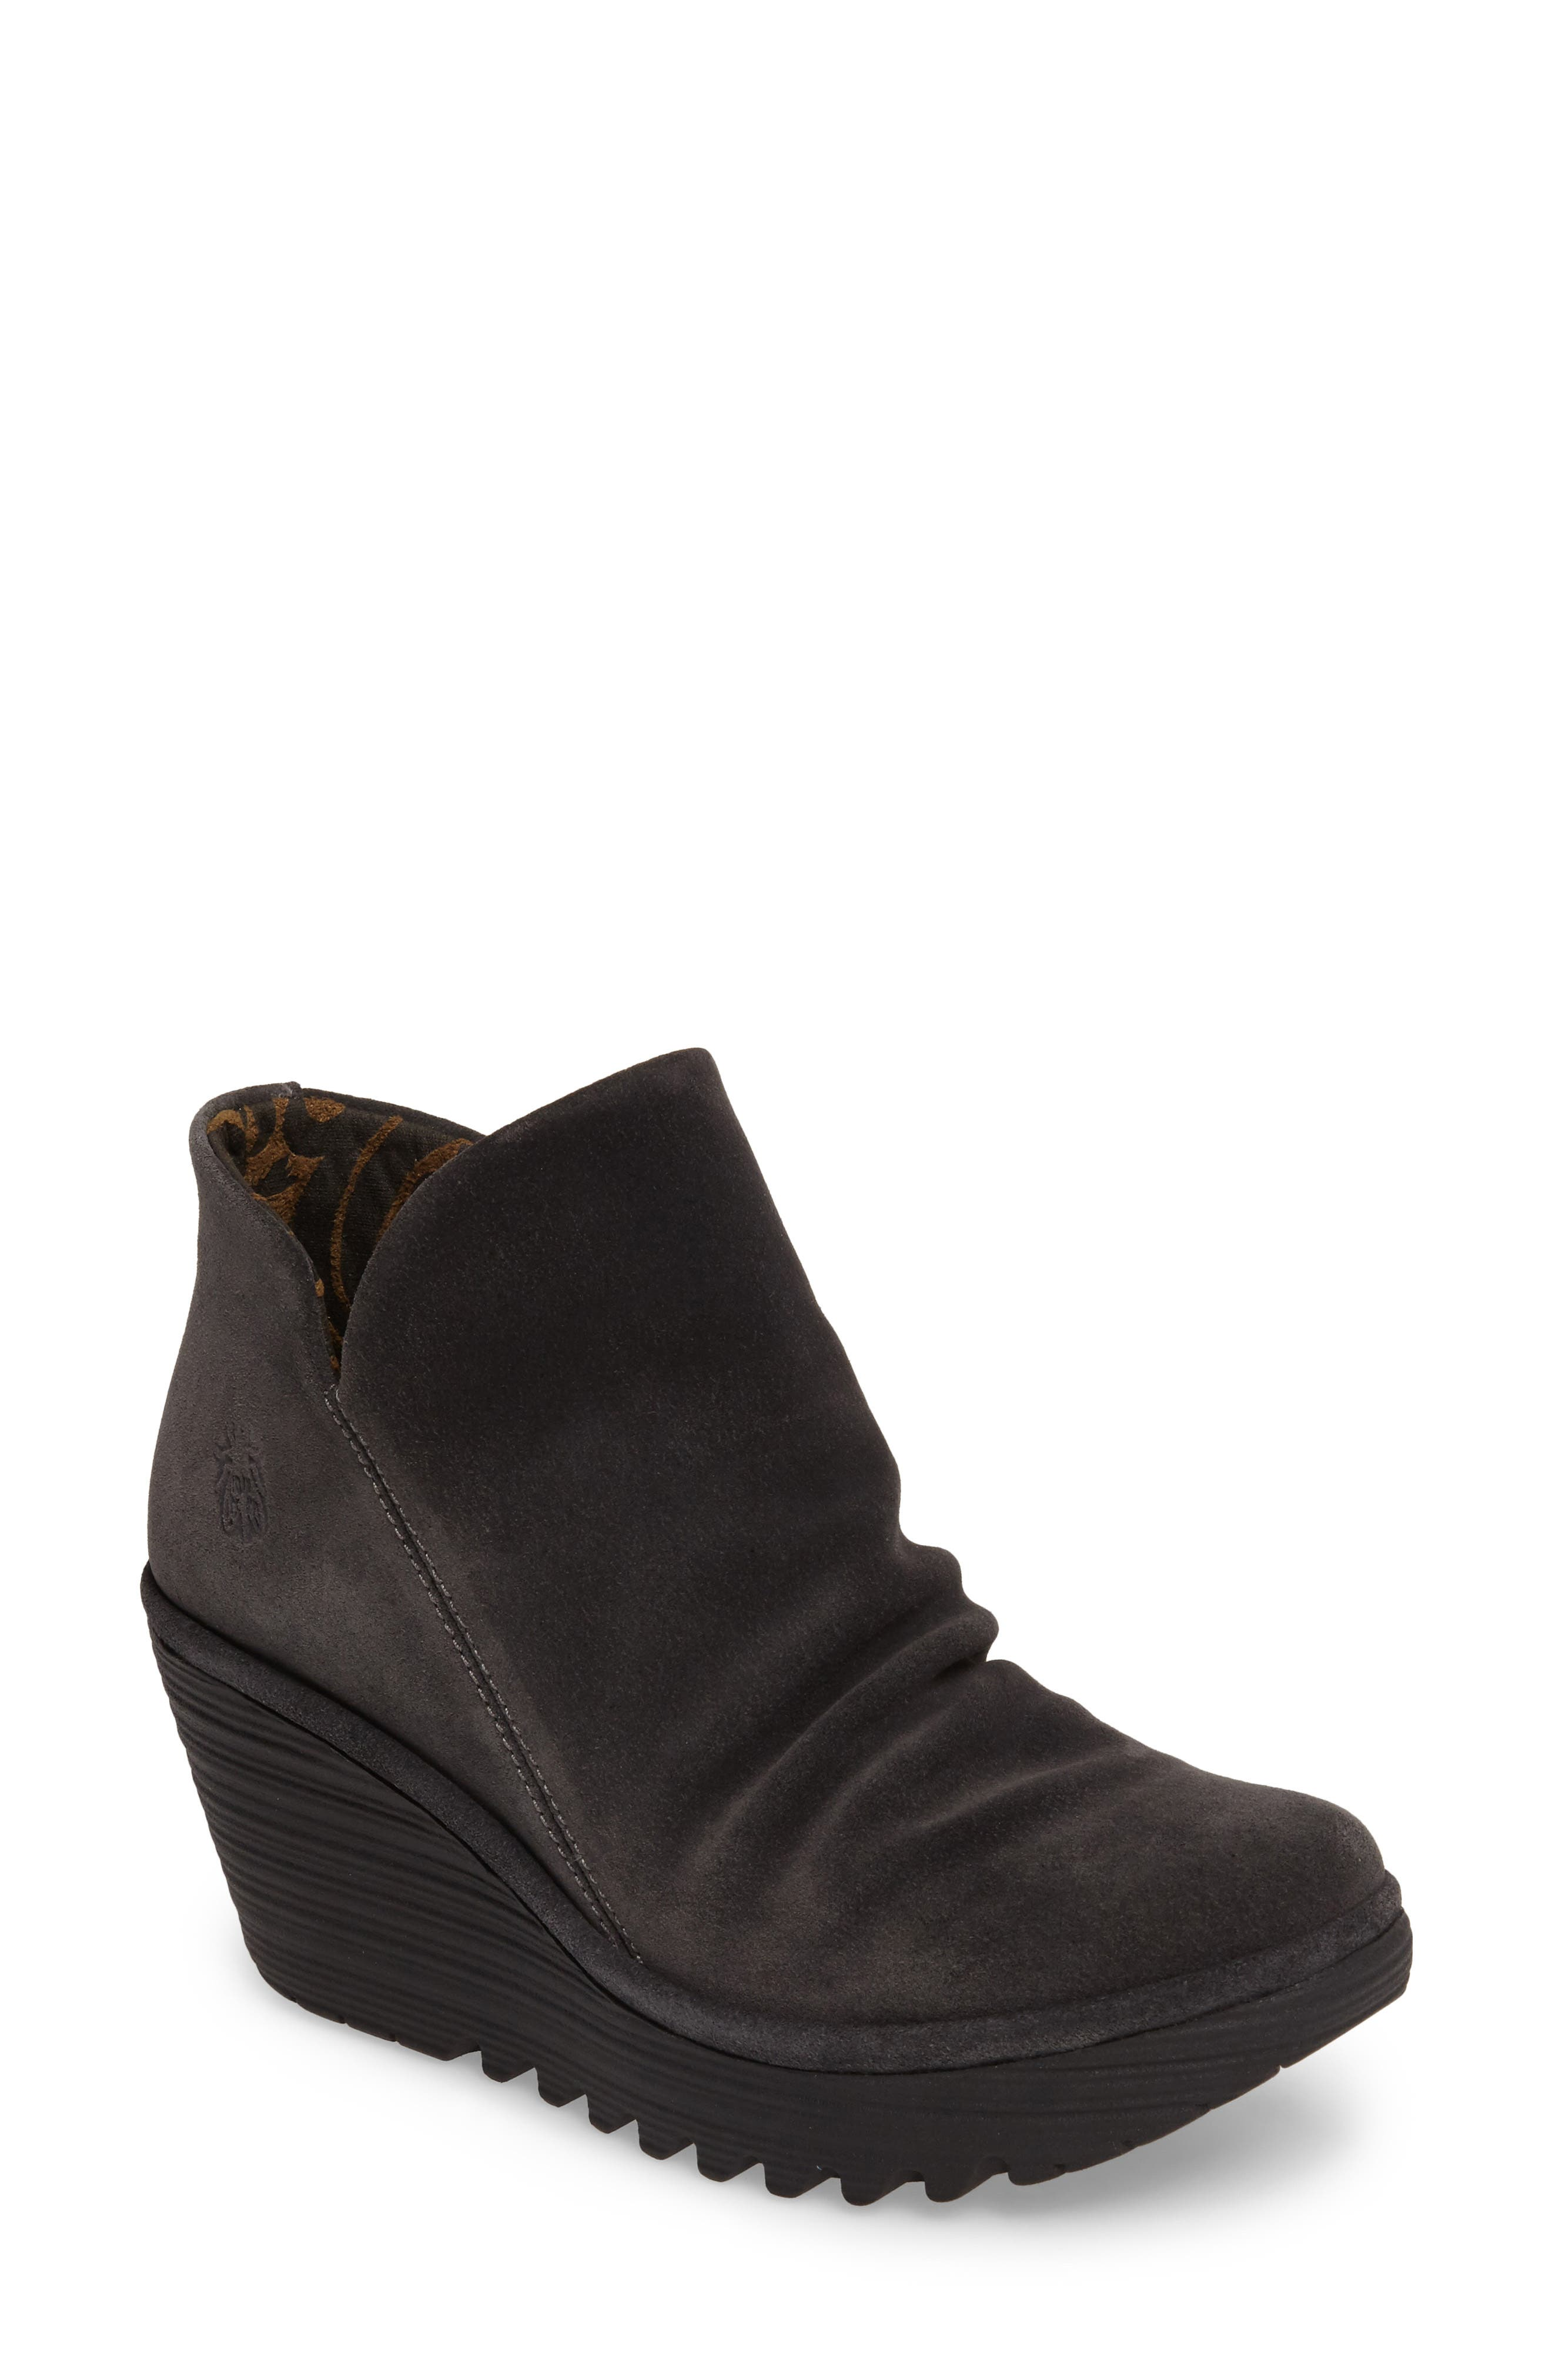 'Yip' Wedge Bootie,                             Main thumbnail 1, color,                             BLACK